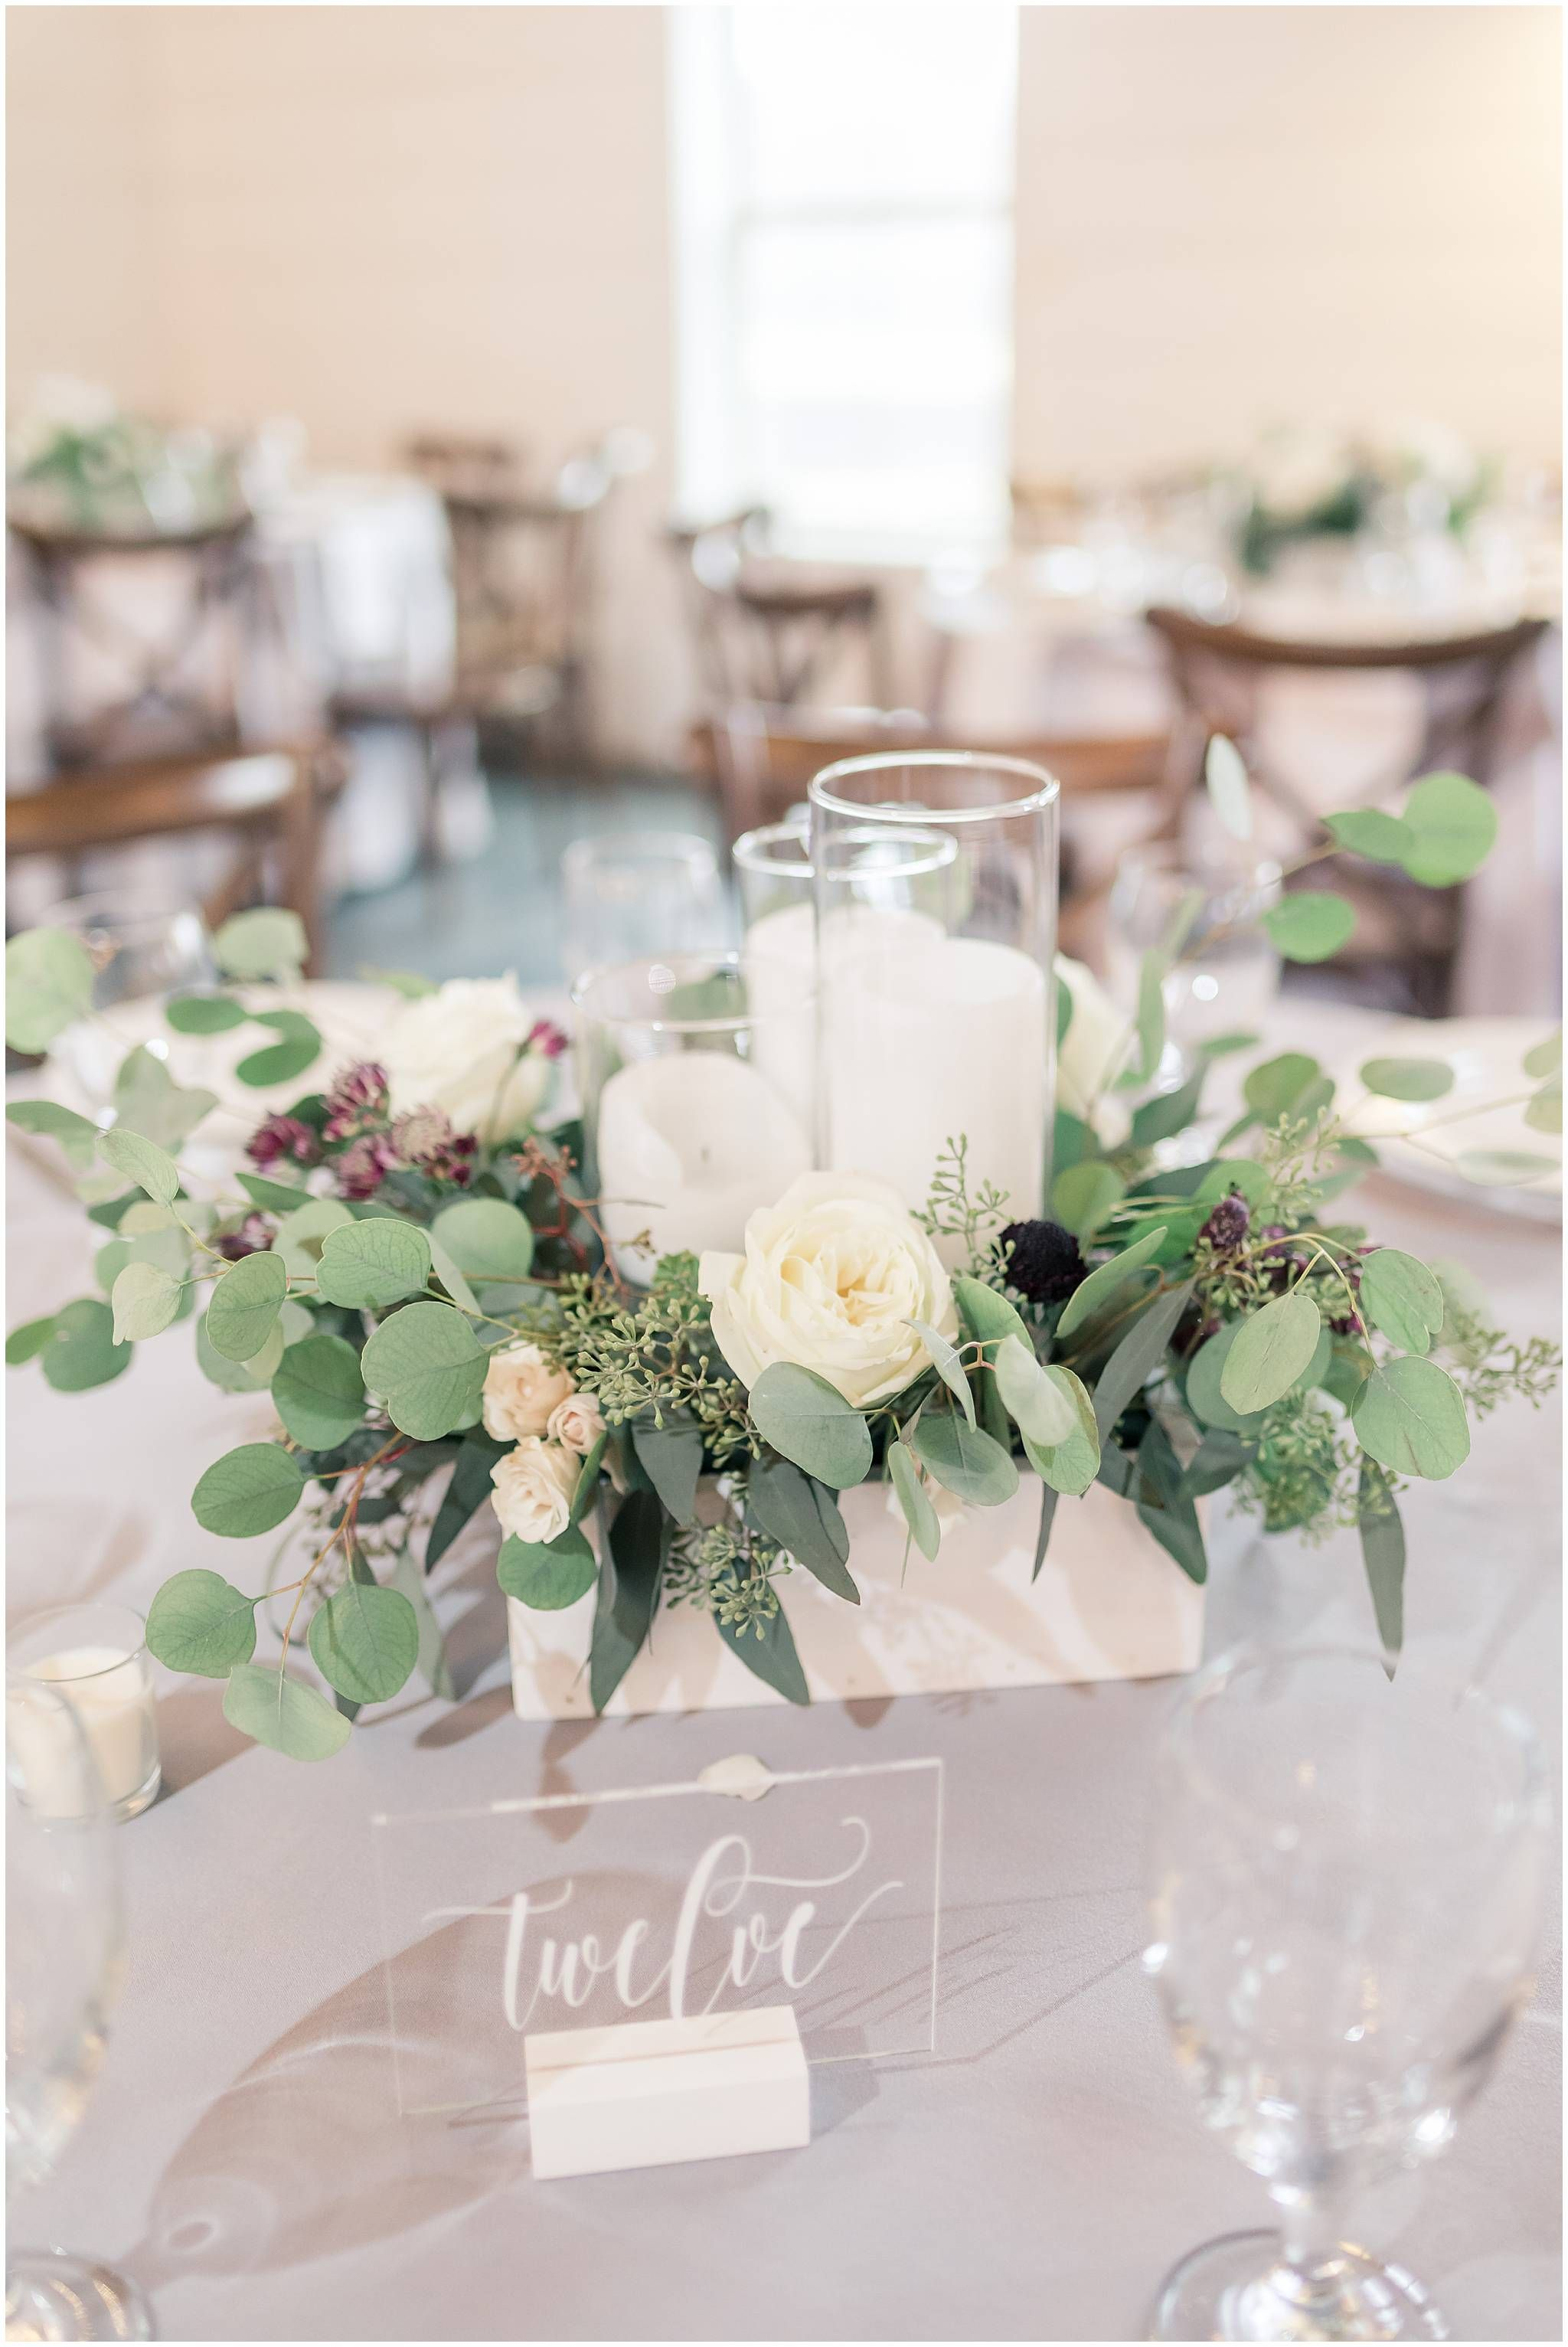 Rainy Wedding At Grant Hill Farms Venue Five Fourteen Photography In 2020 Wedding Centerpieces Fall Wedding Centerpieces Wedding Decorations